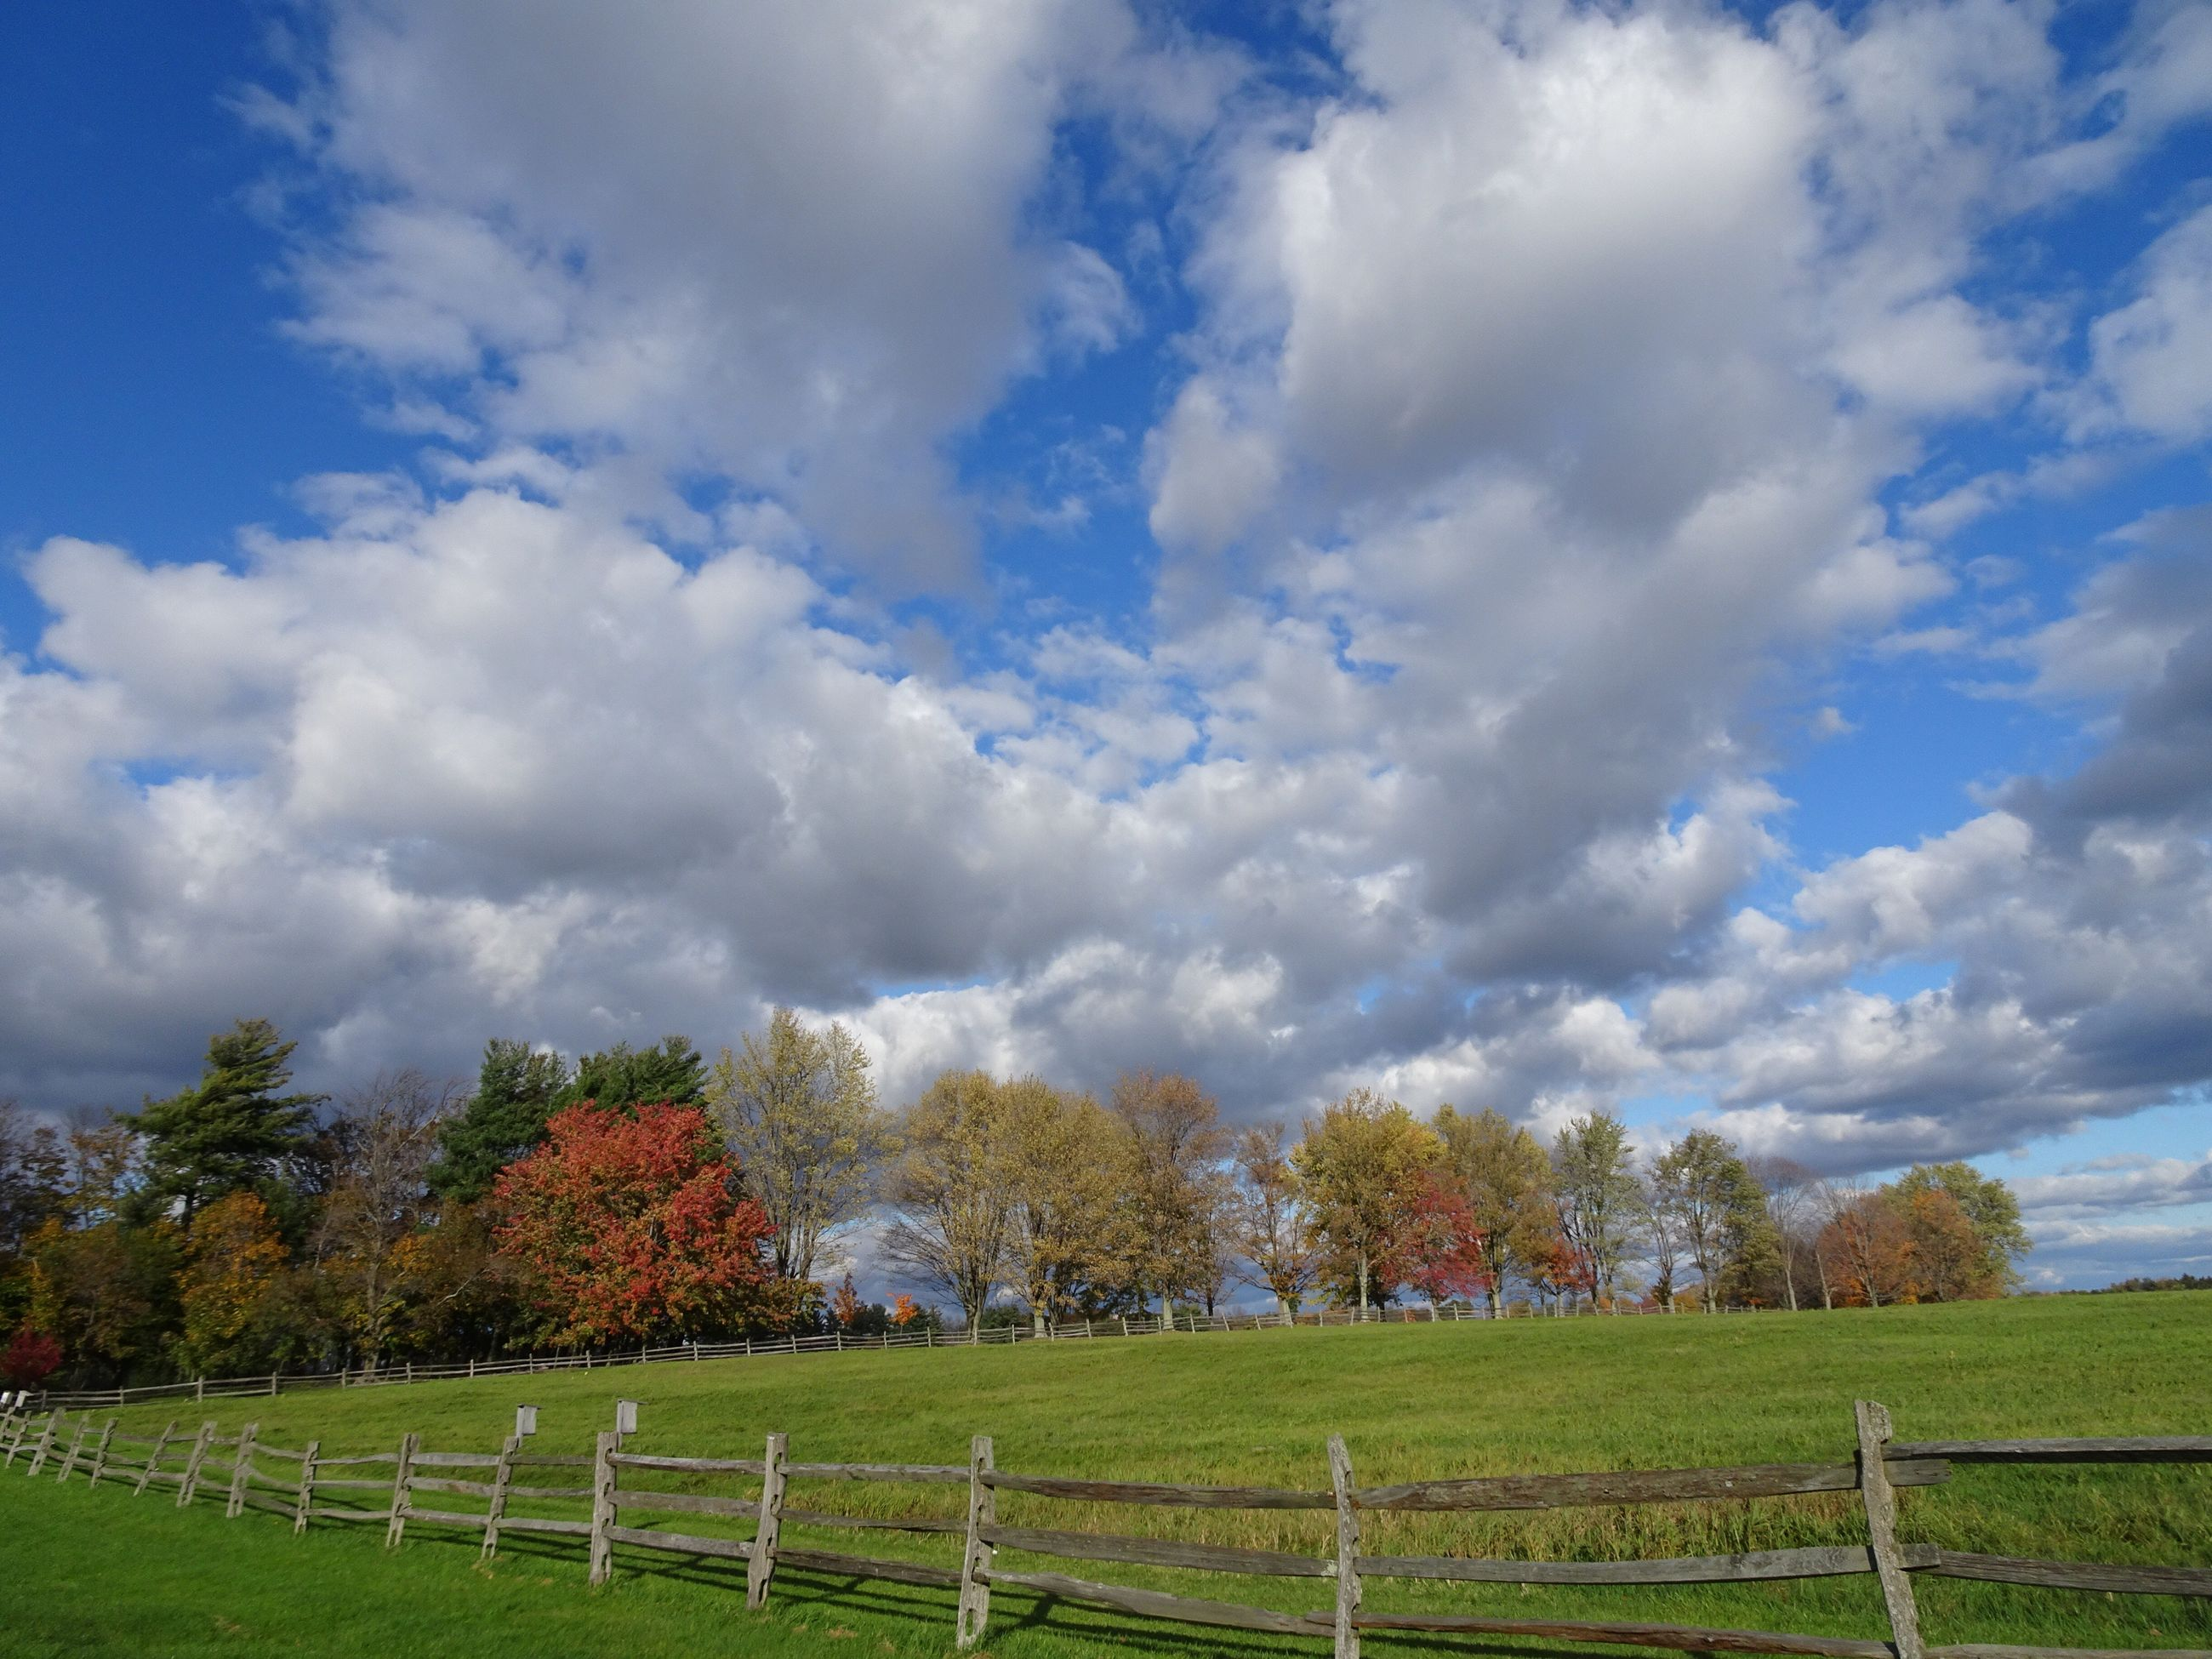 cloud - sky, sky, field, tree, tranquility, grass, day, nature, landscape, tranquil scene, scenics, beauty in nature, no people, outdoors, growth